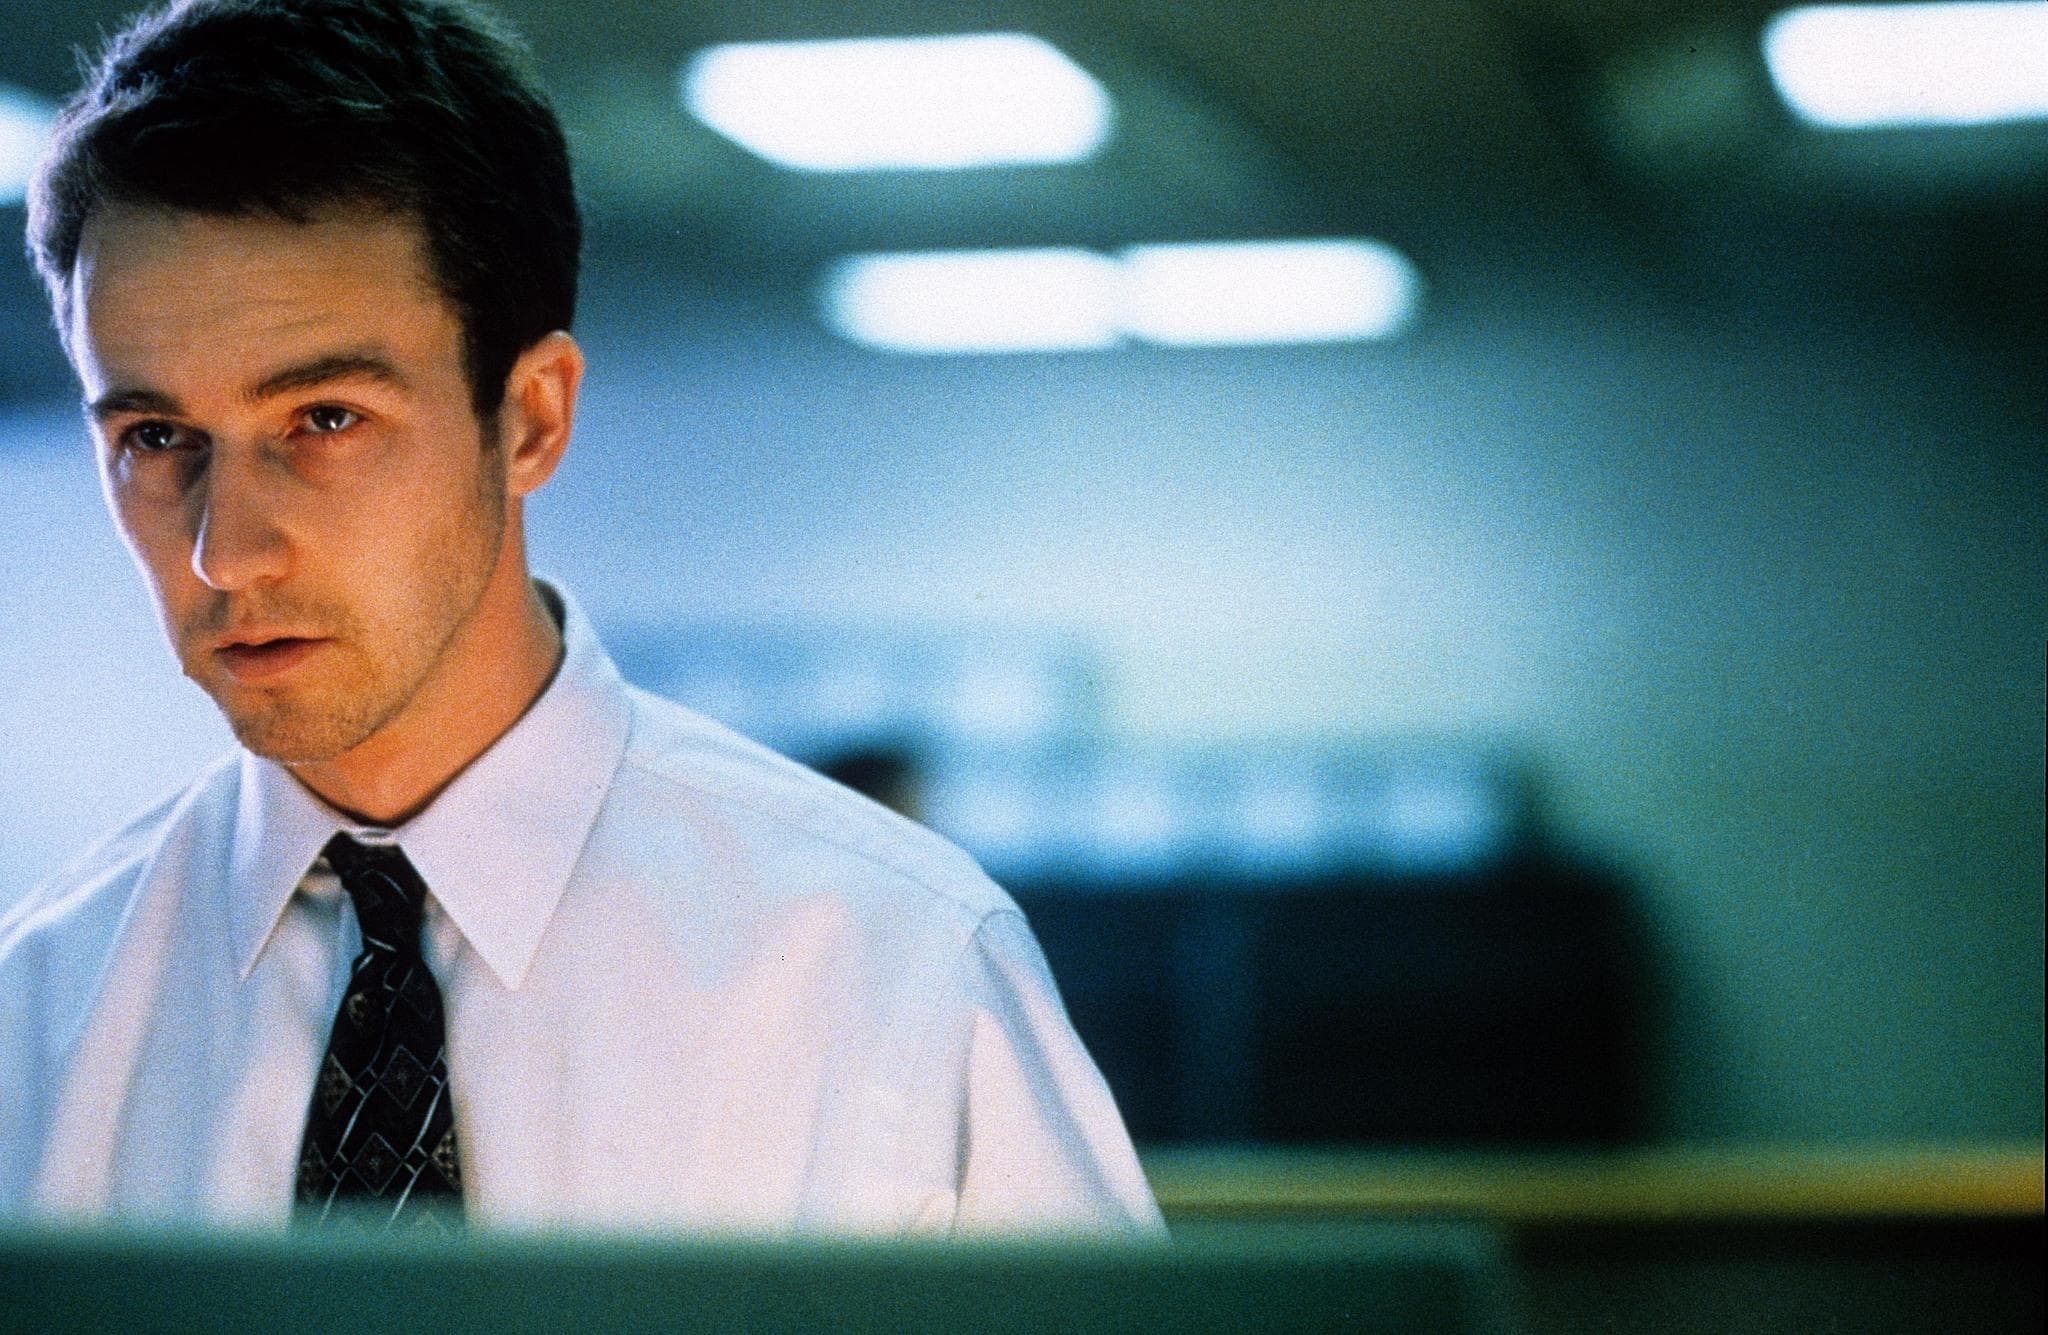 Edward Norton Widescreen for desktop